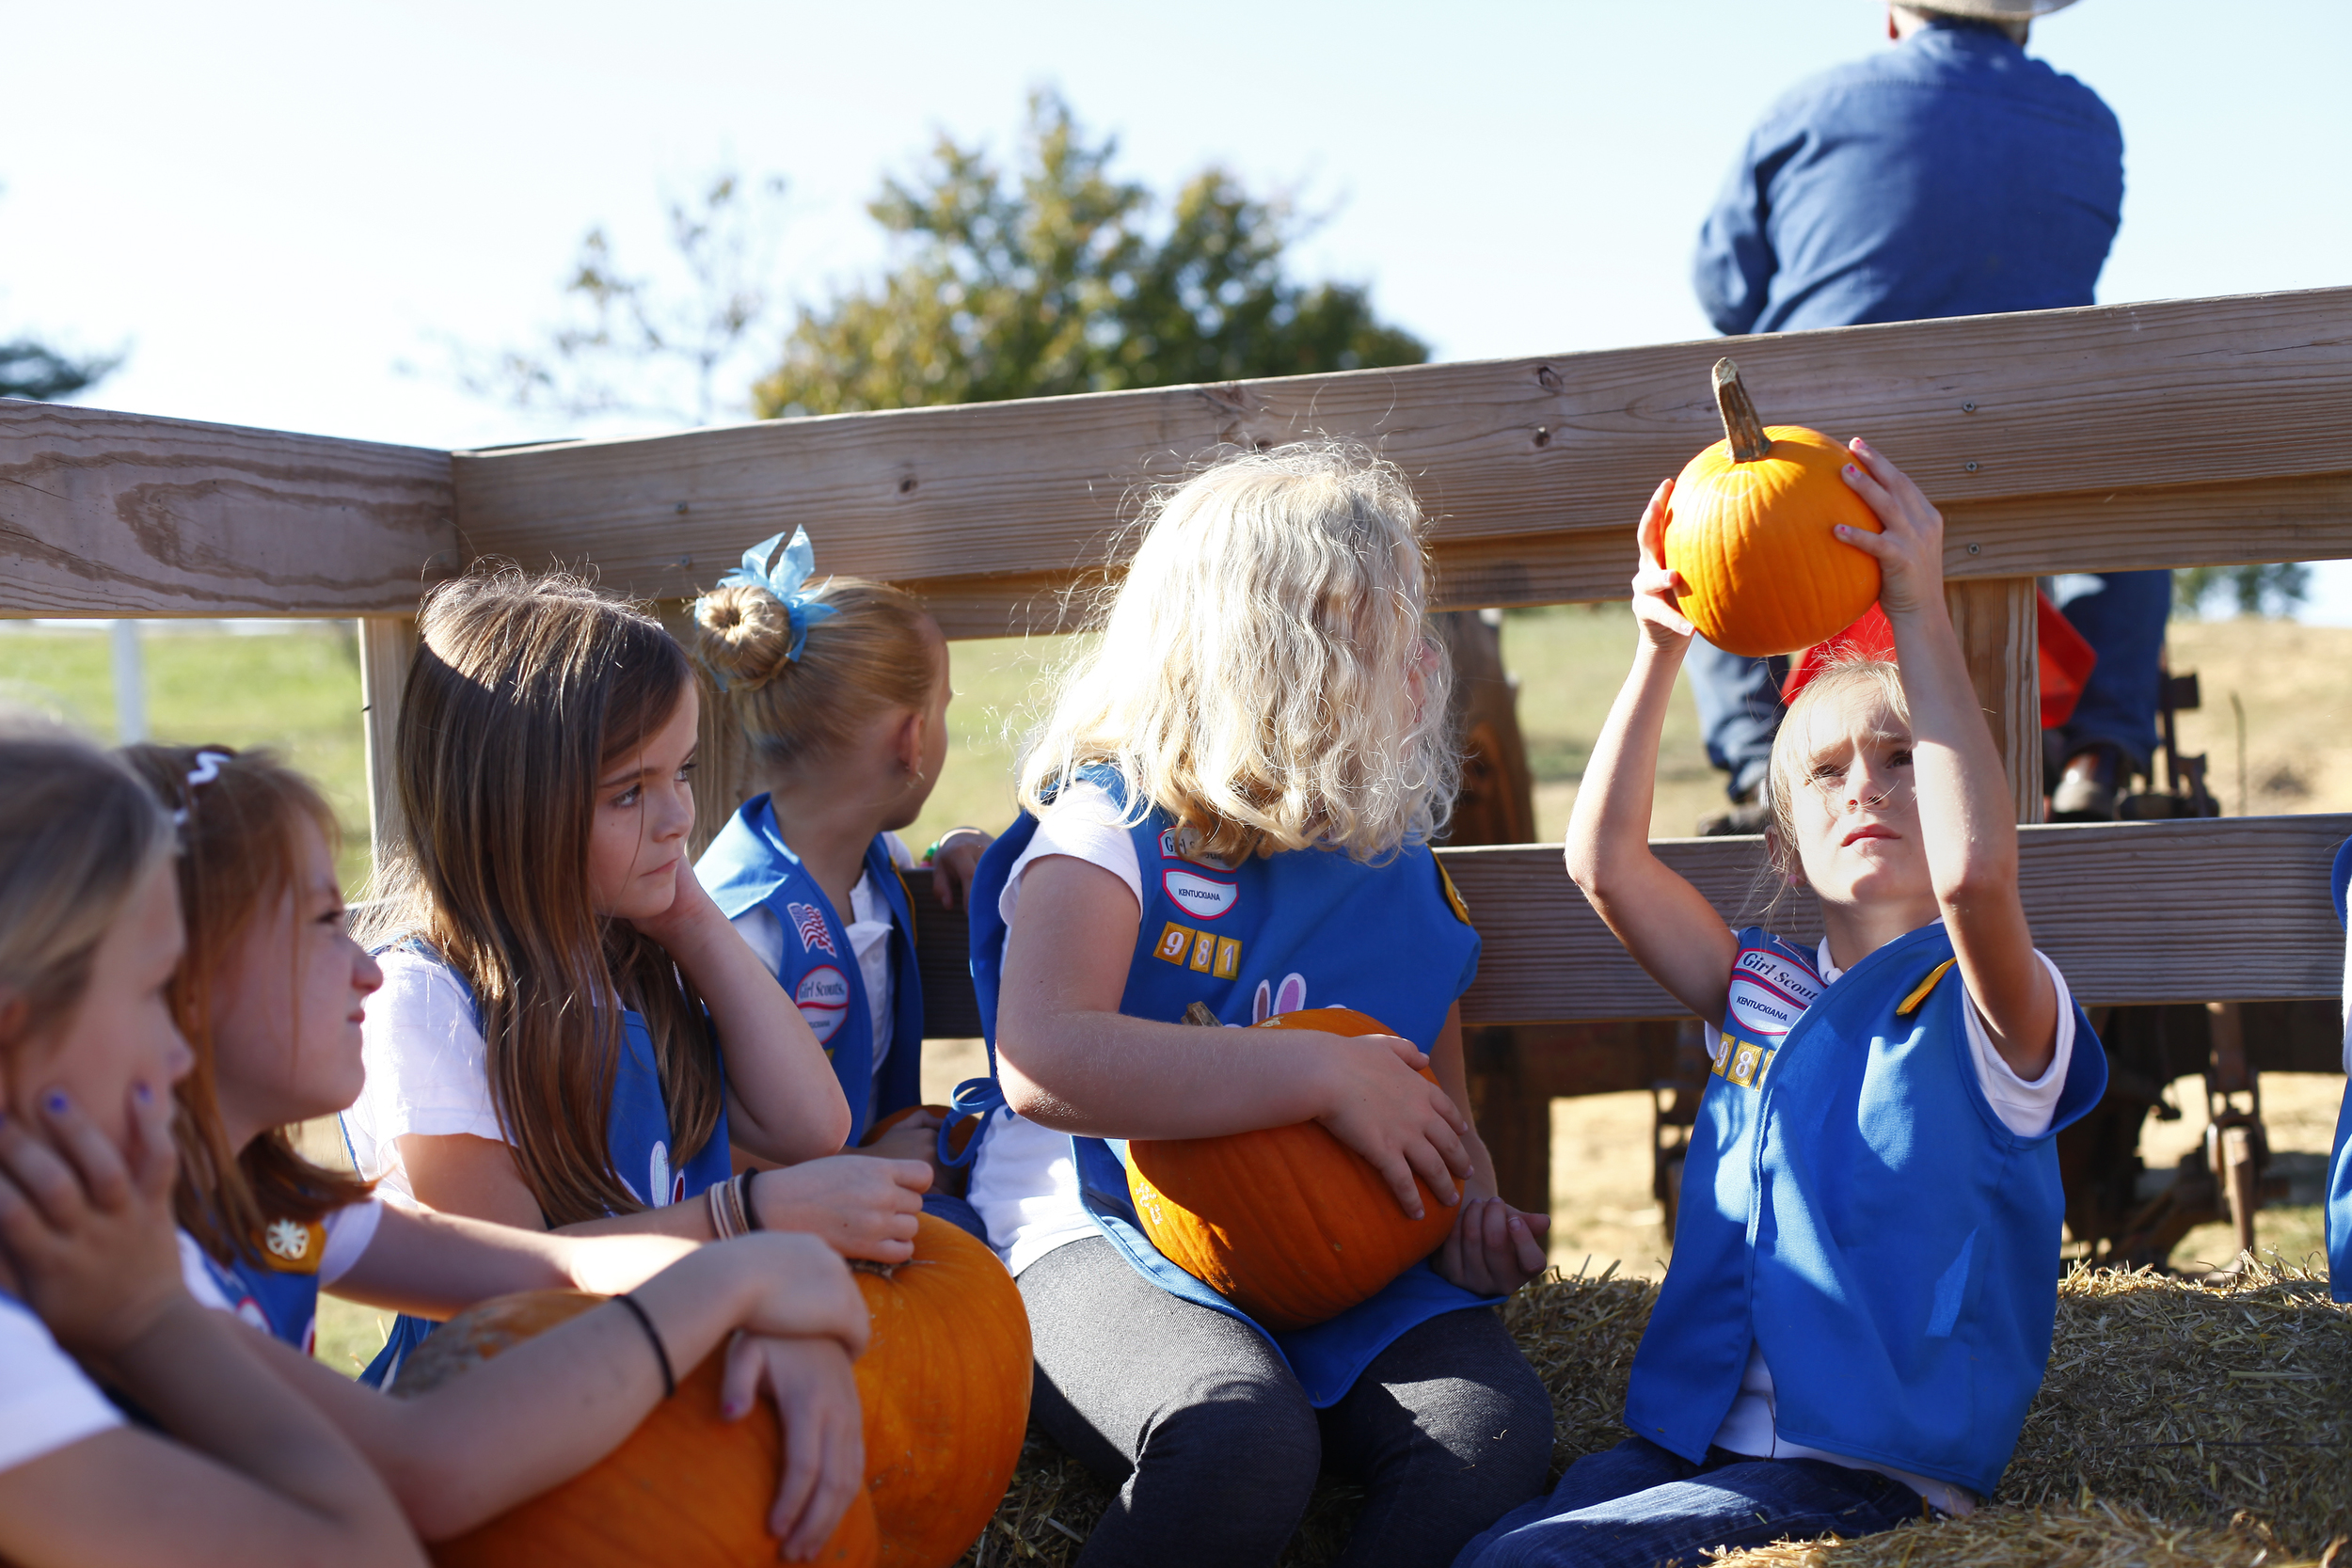 Ava Rich inspects her pumpkin. Her Girl Scout troop made a donation to a local charity before taking part in the fall festivities at Cullenook.